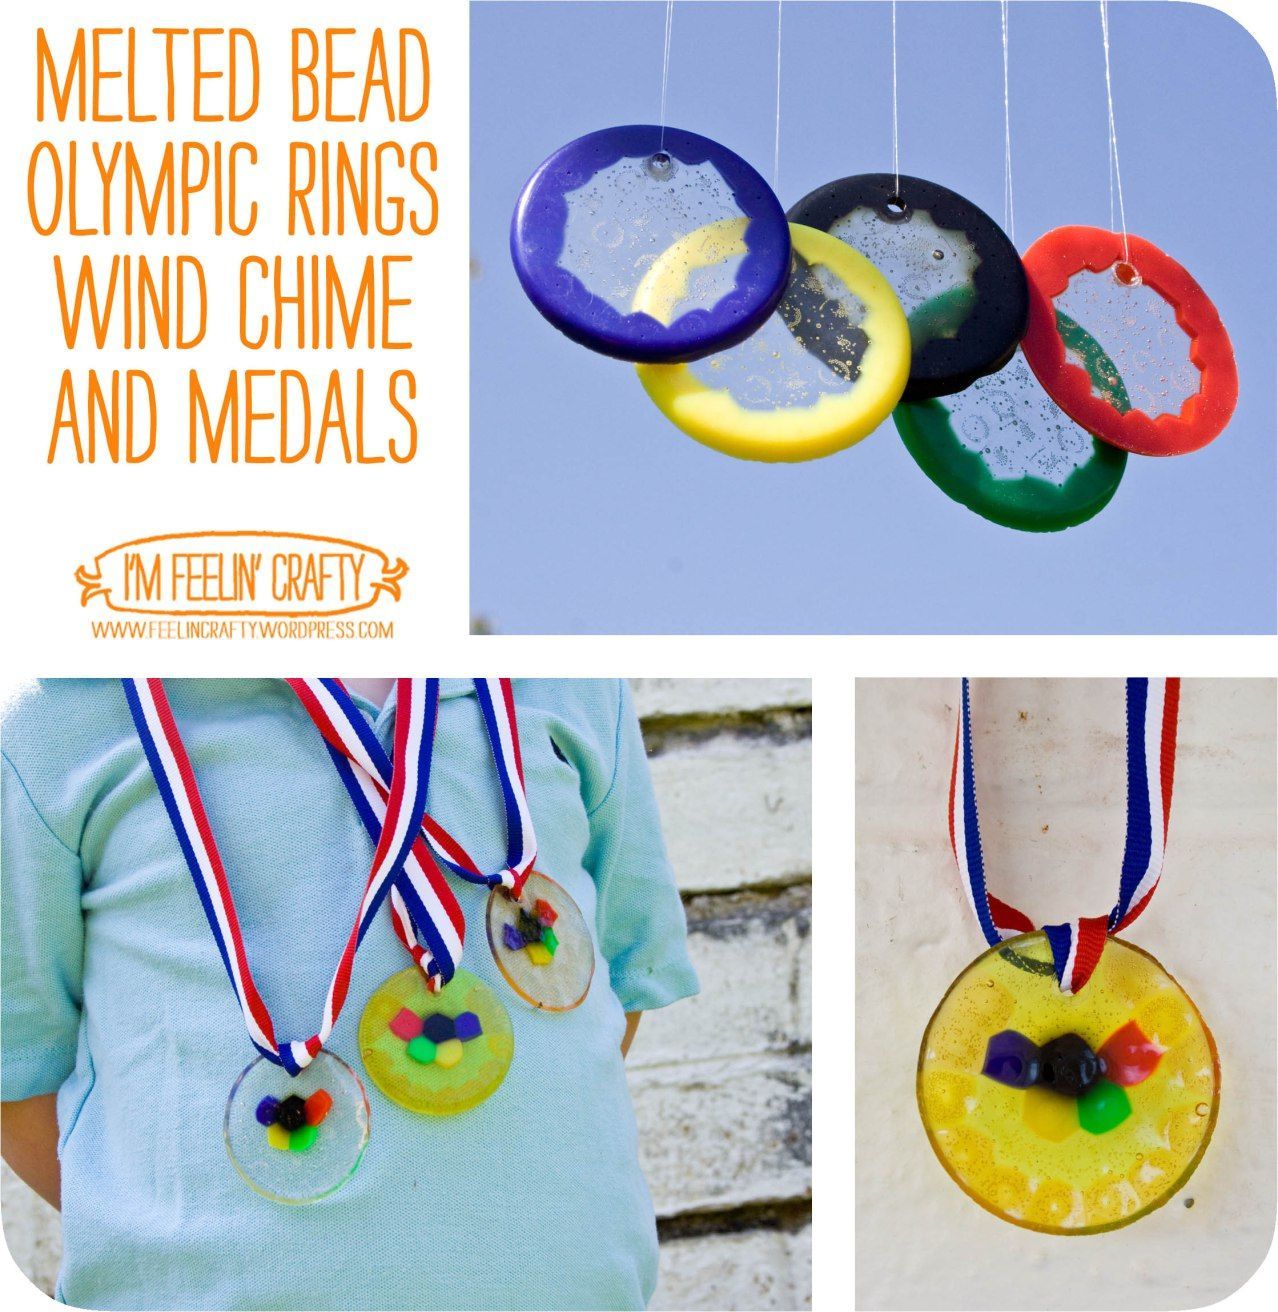 Melted Bead Olympic Rings and Medals- I'm Feelin' Crafty